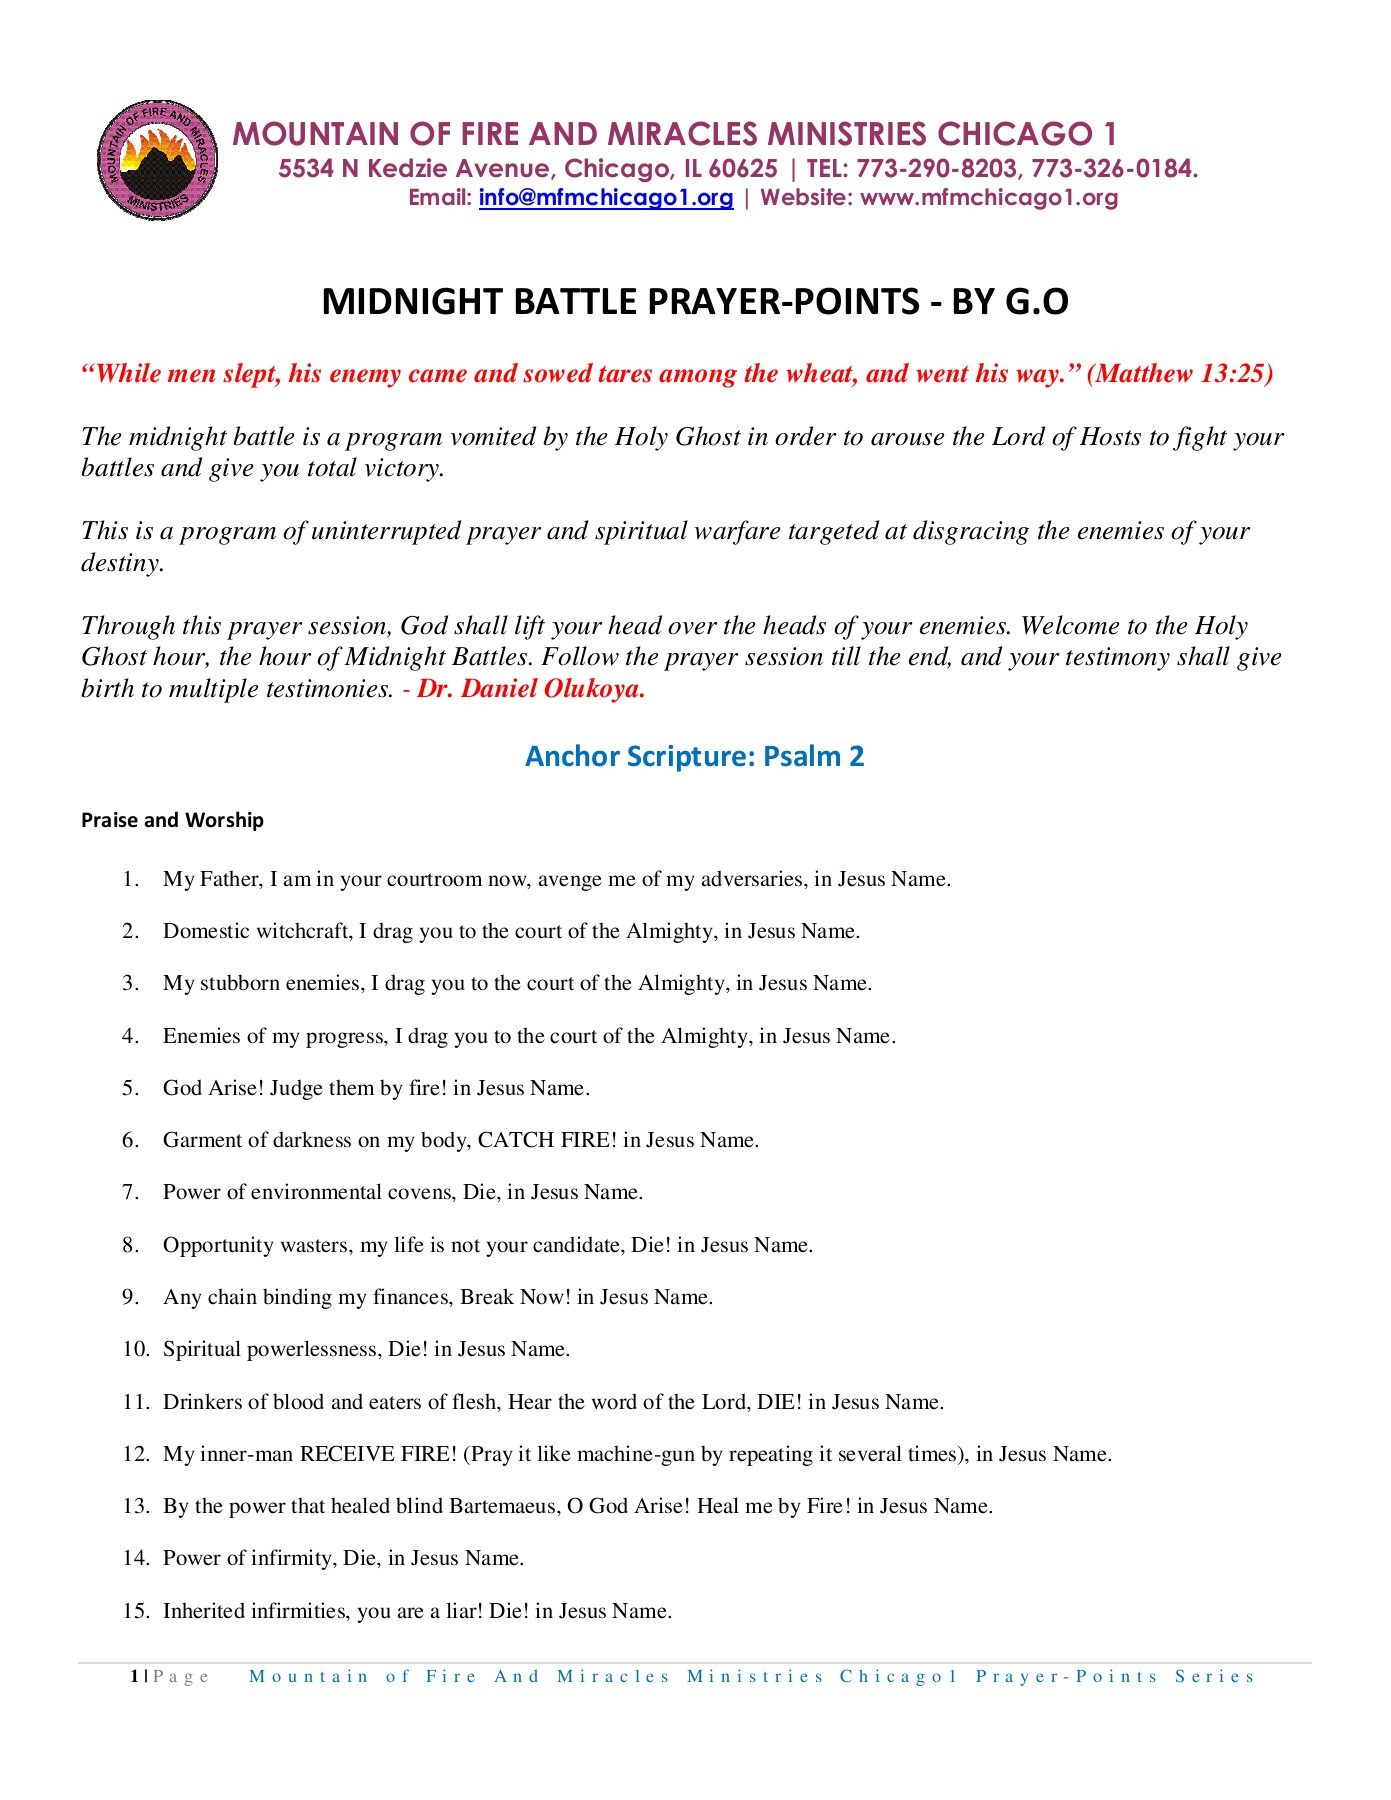 MIDNIGHT BATTLE PRAYER-POINTS - MFM Chicago1 Pages 1 - 7 - Text